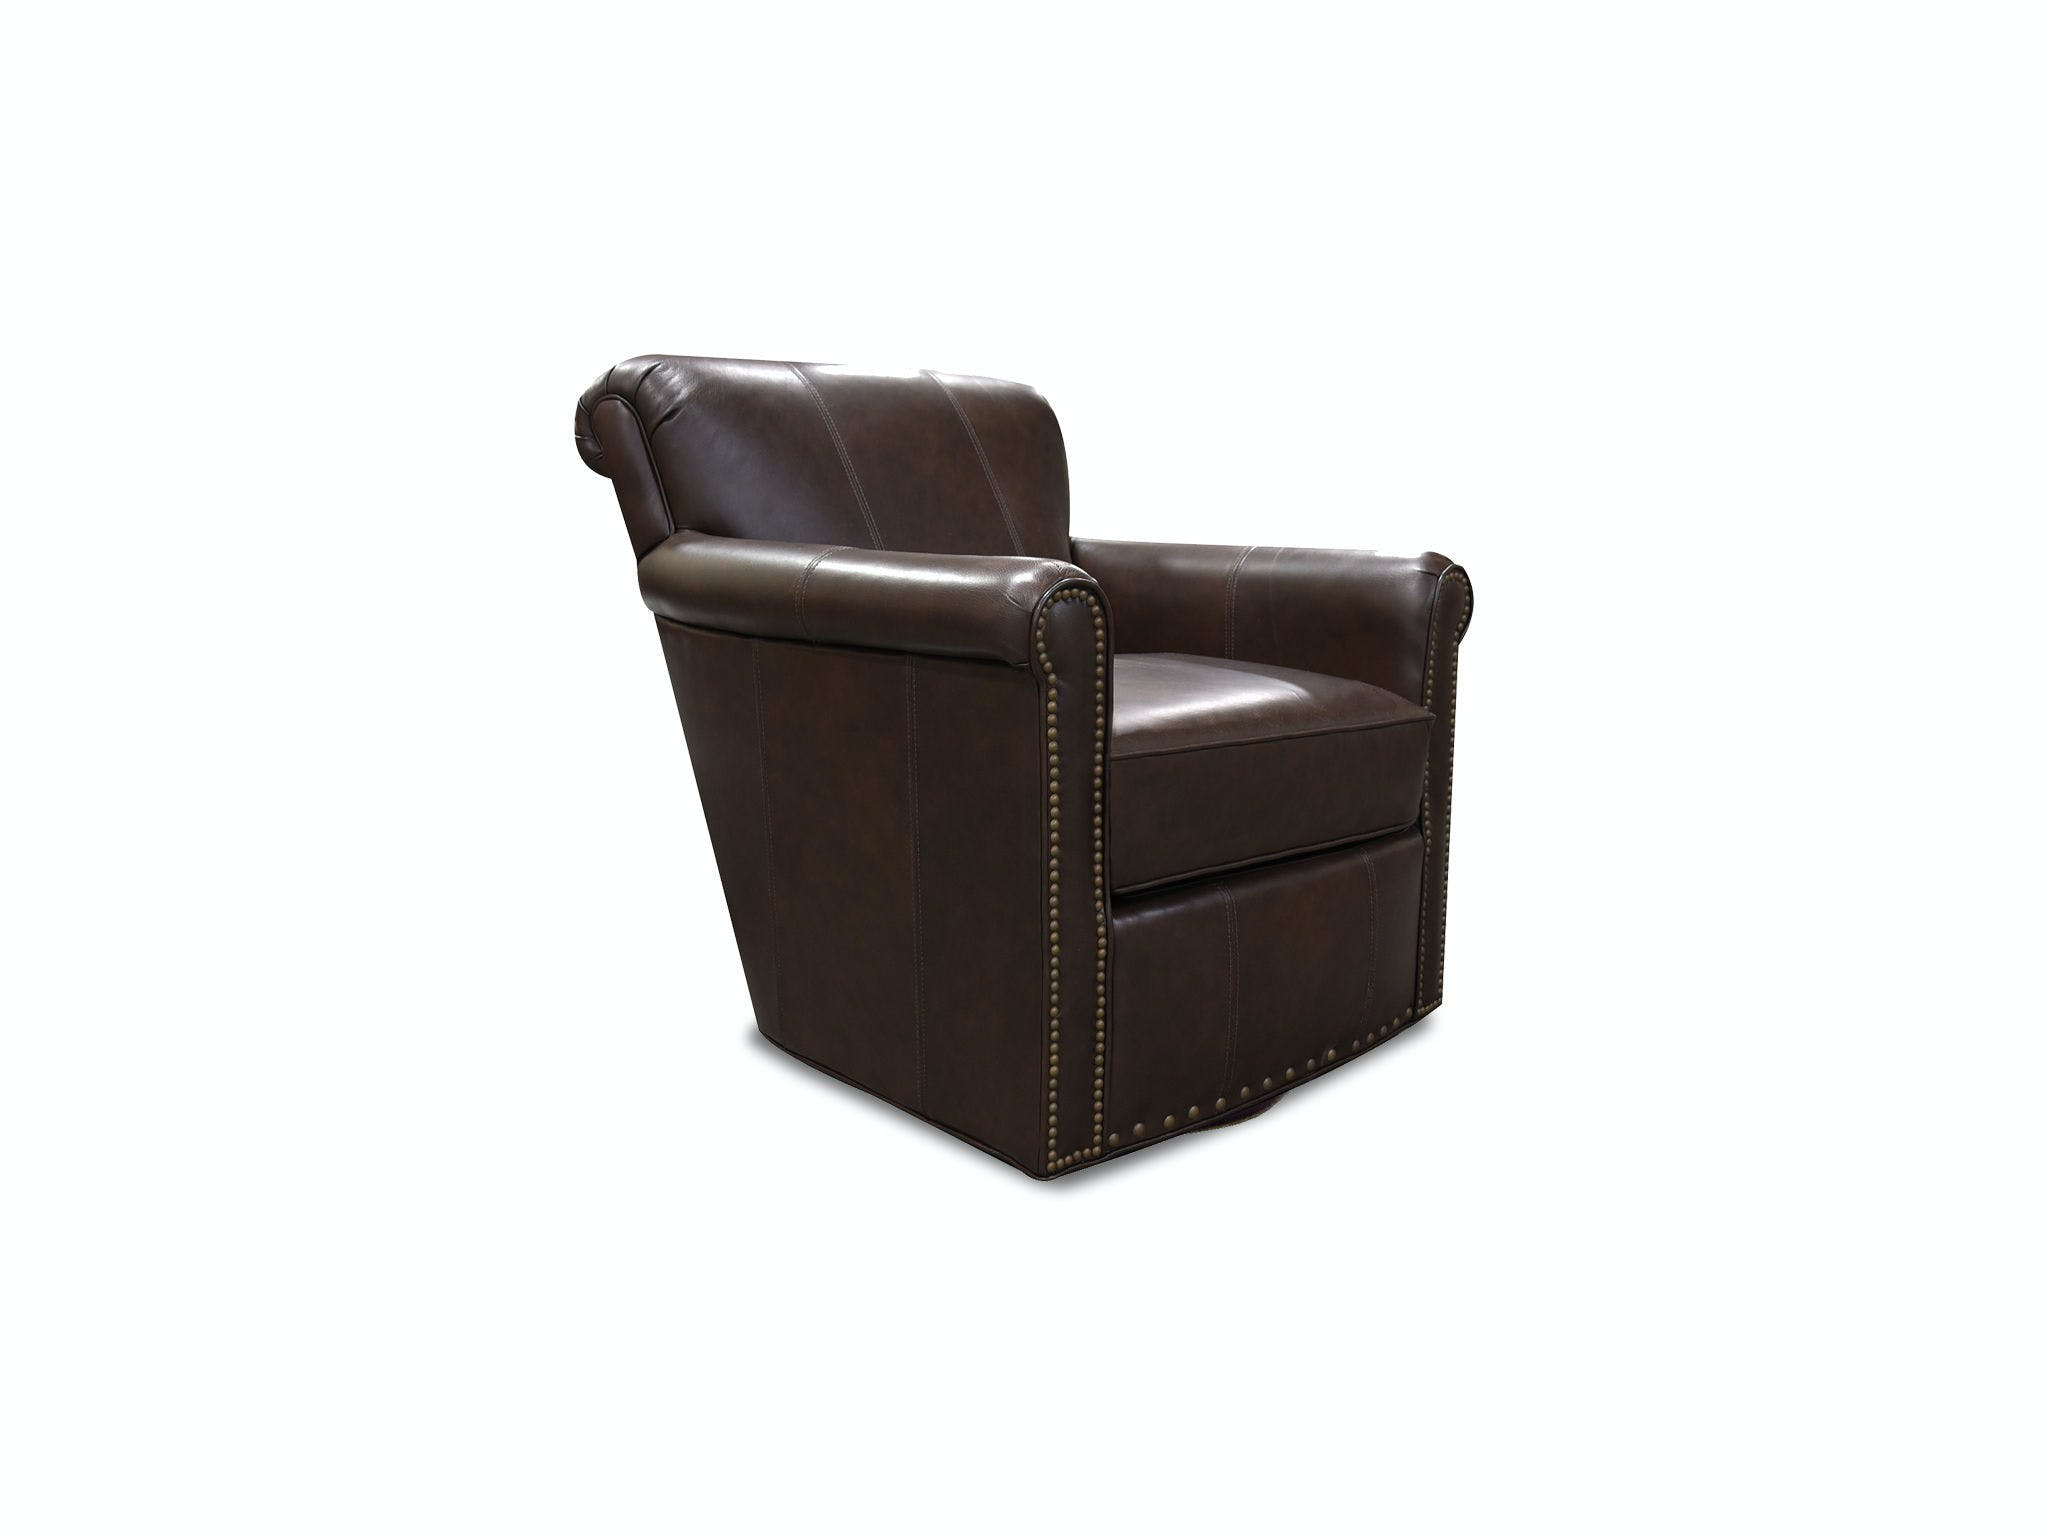 England Living Room Lillian Swivel Chair With Nails 3c69aln